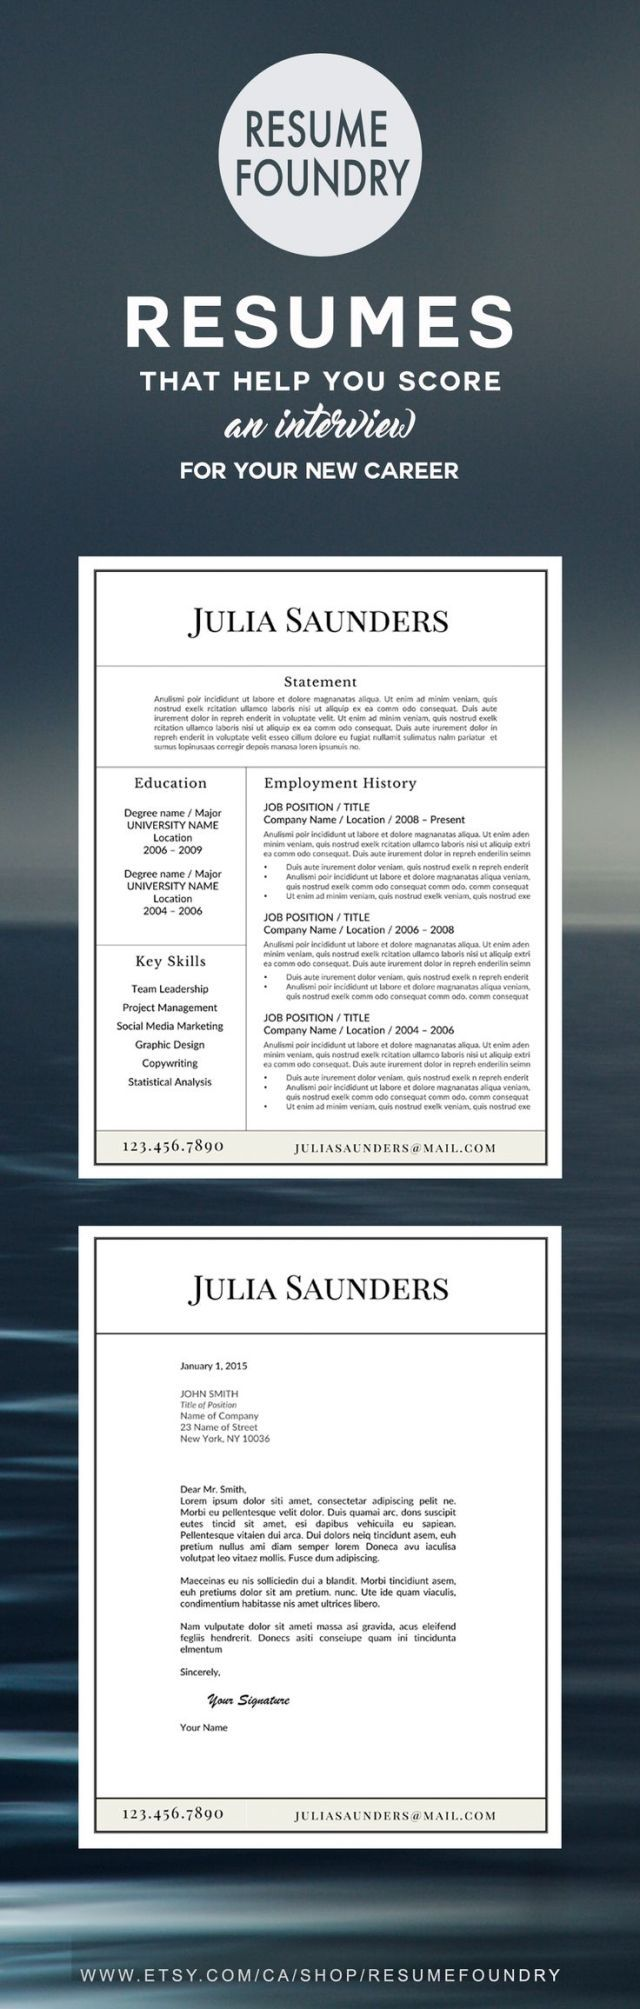 Business Analyst Resume Examples%0A professional resume sample format